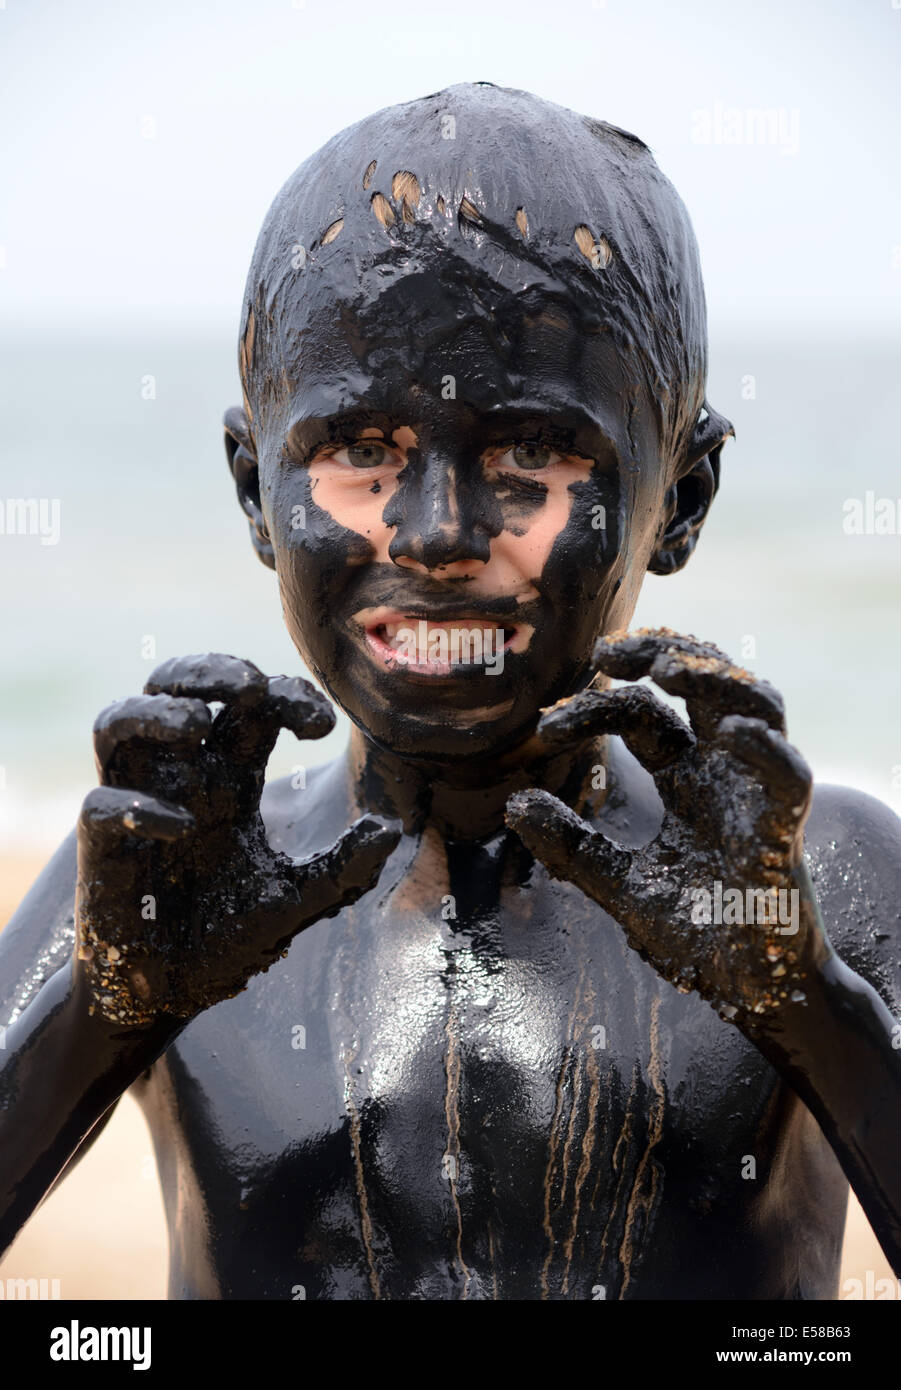 child in the mud - Stock Image